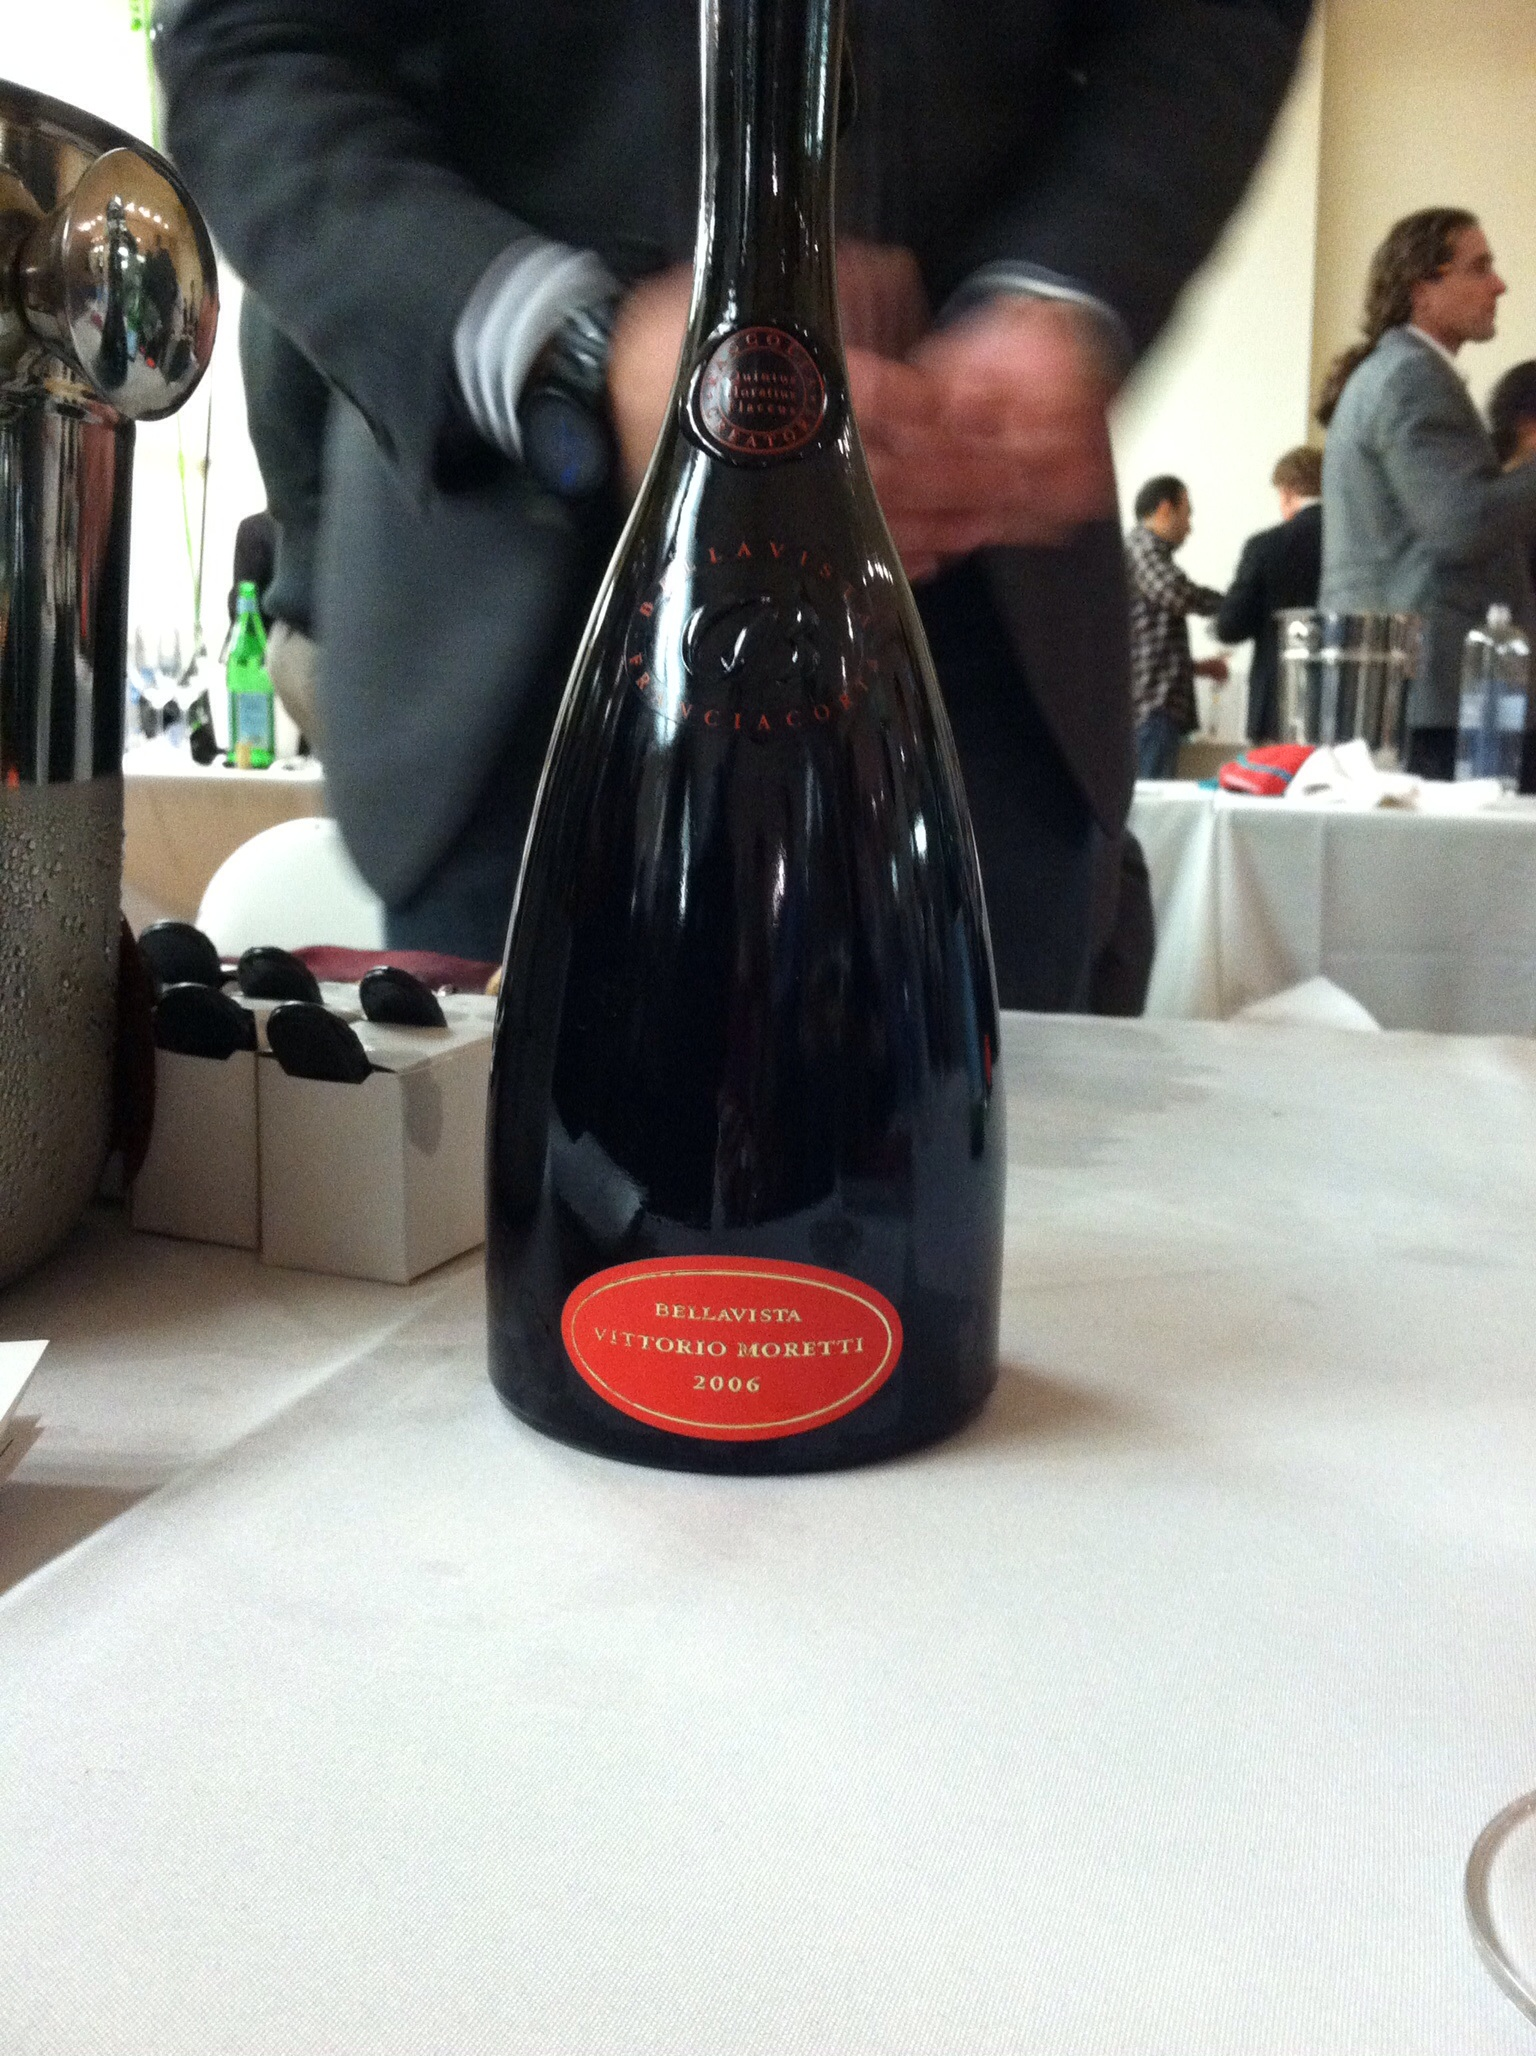 Franciacorta, one of Italy's great sparkling wines